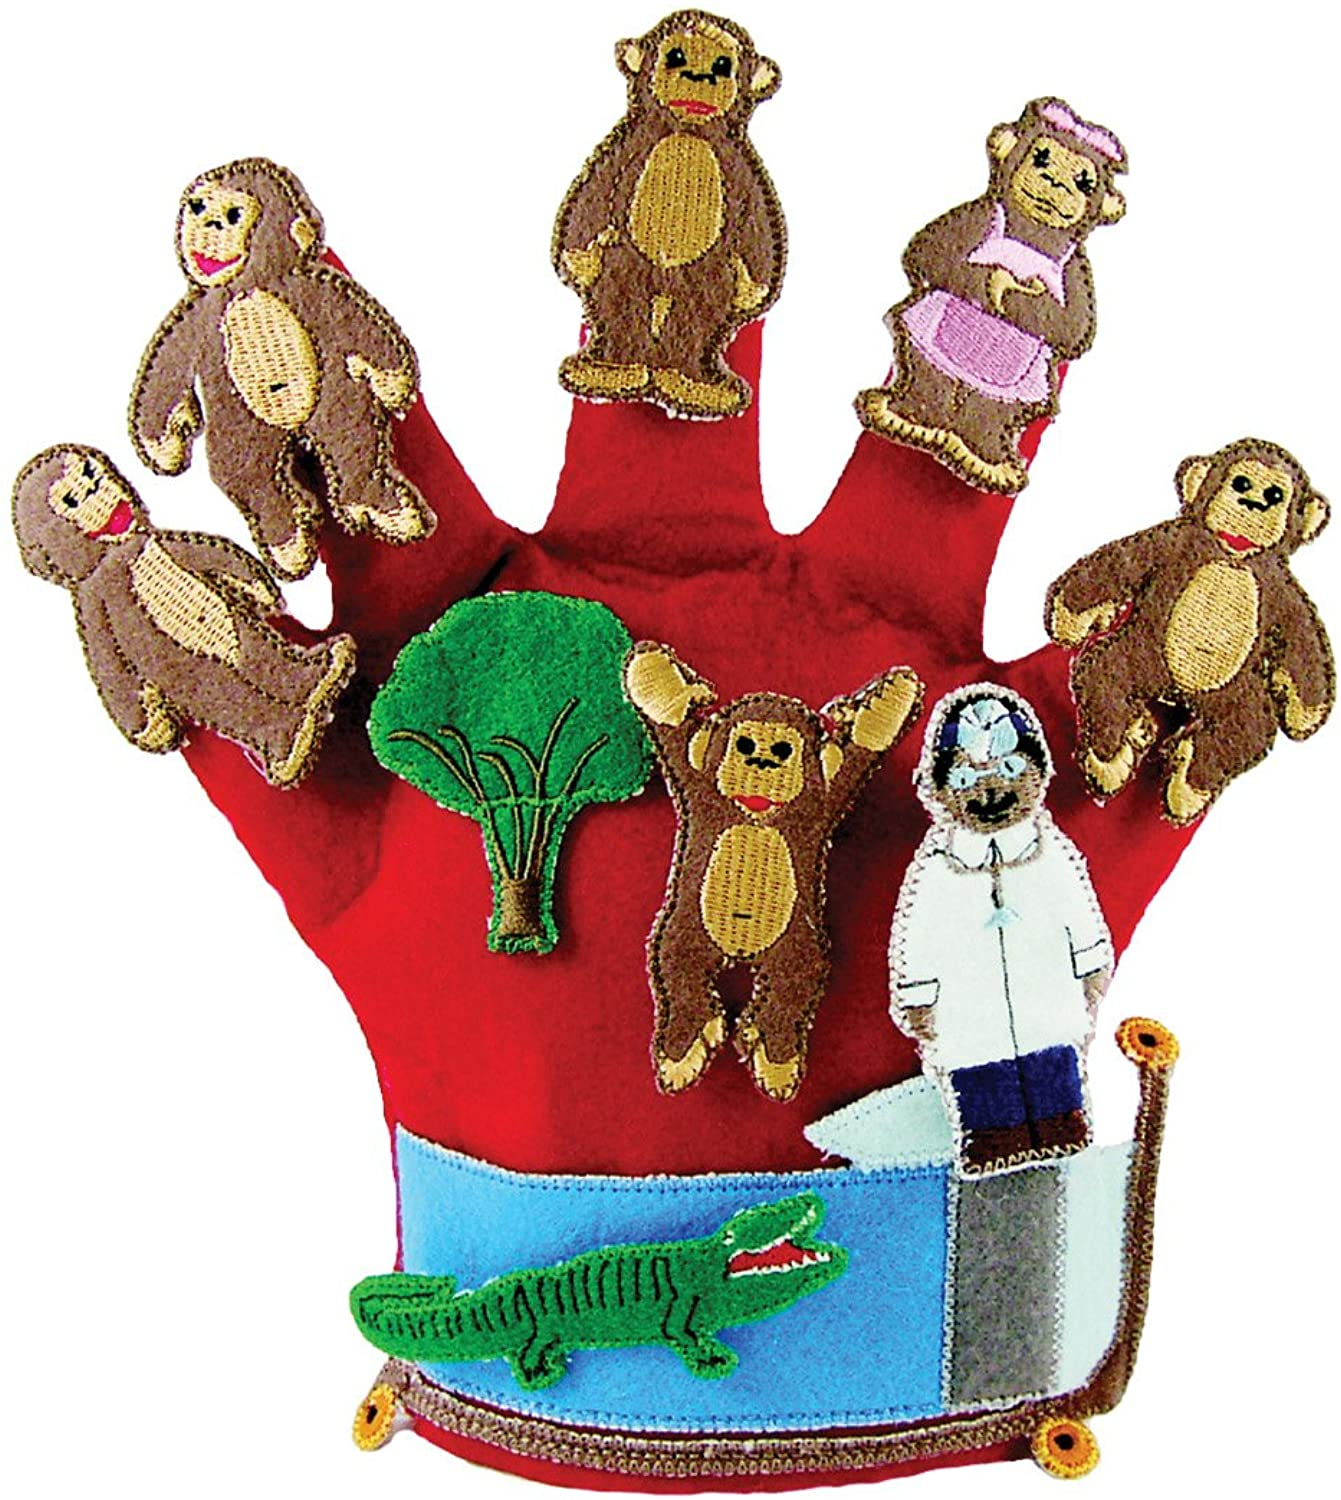 Get Ready Children's Monkeys Jumping on the Bed Glove Puppet/CD